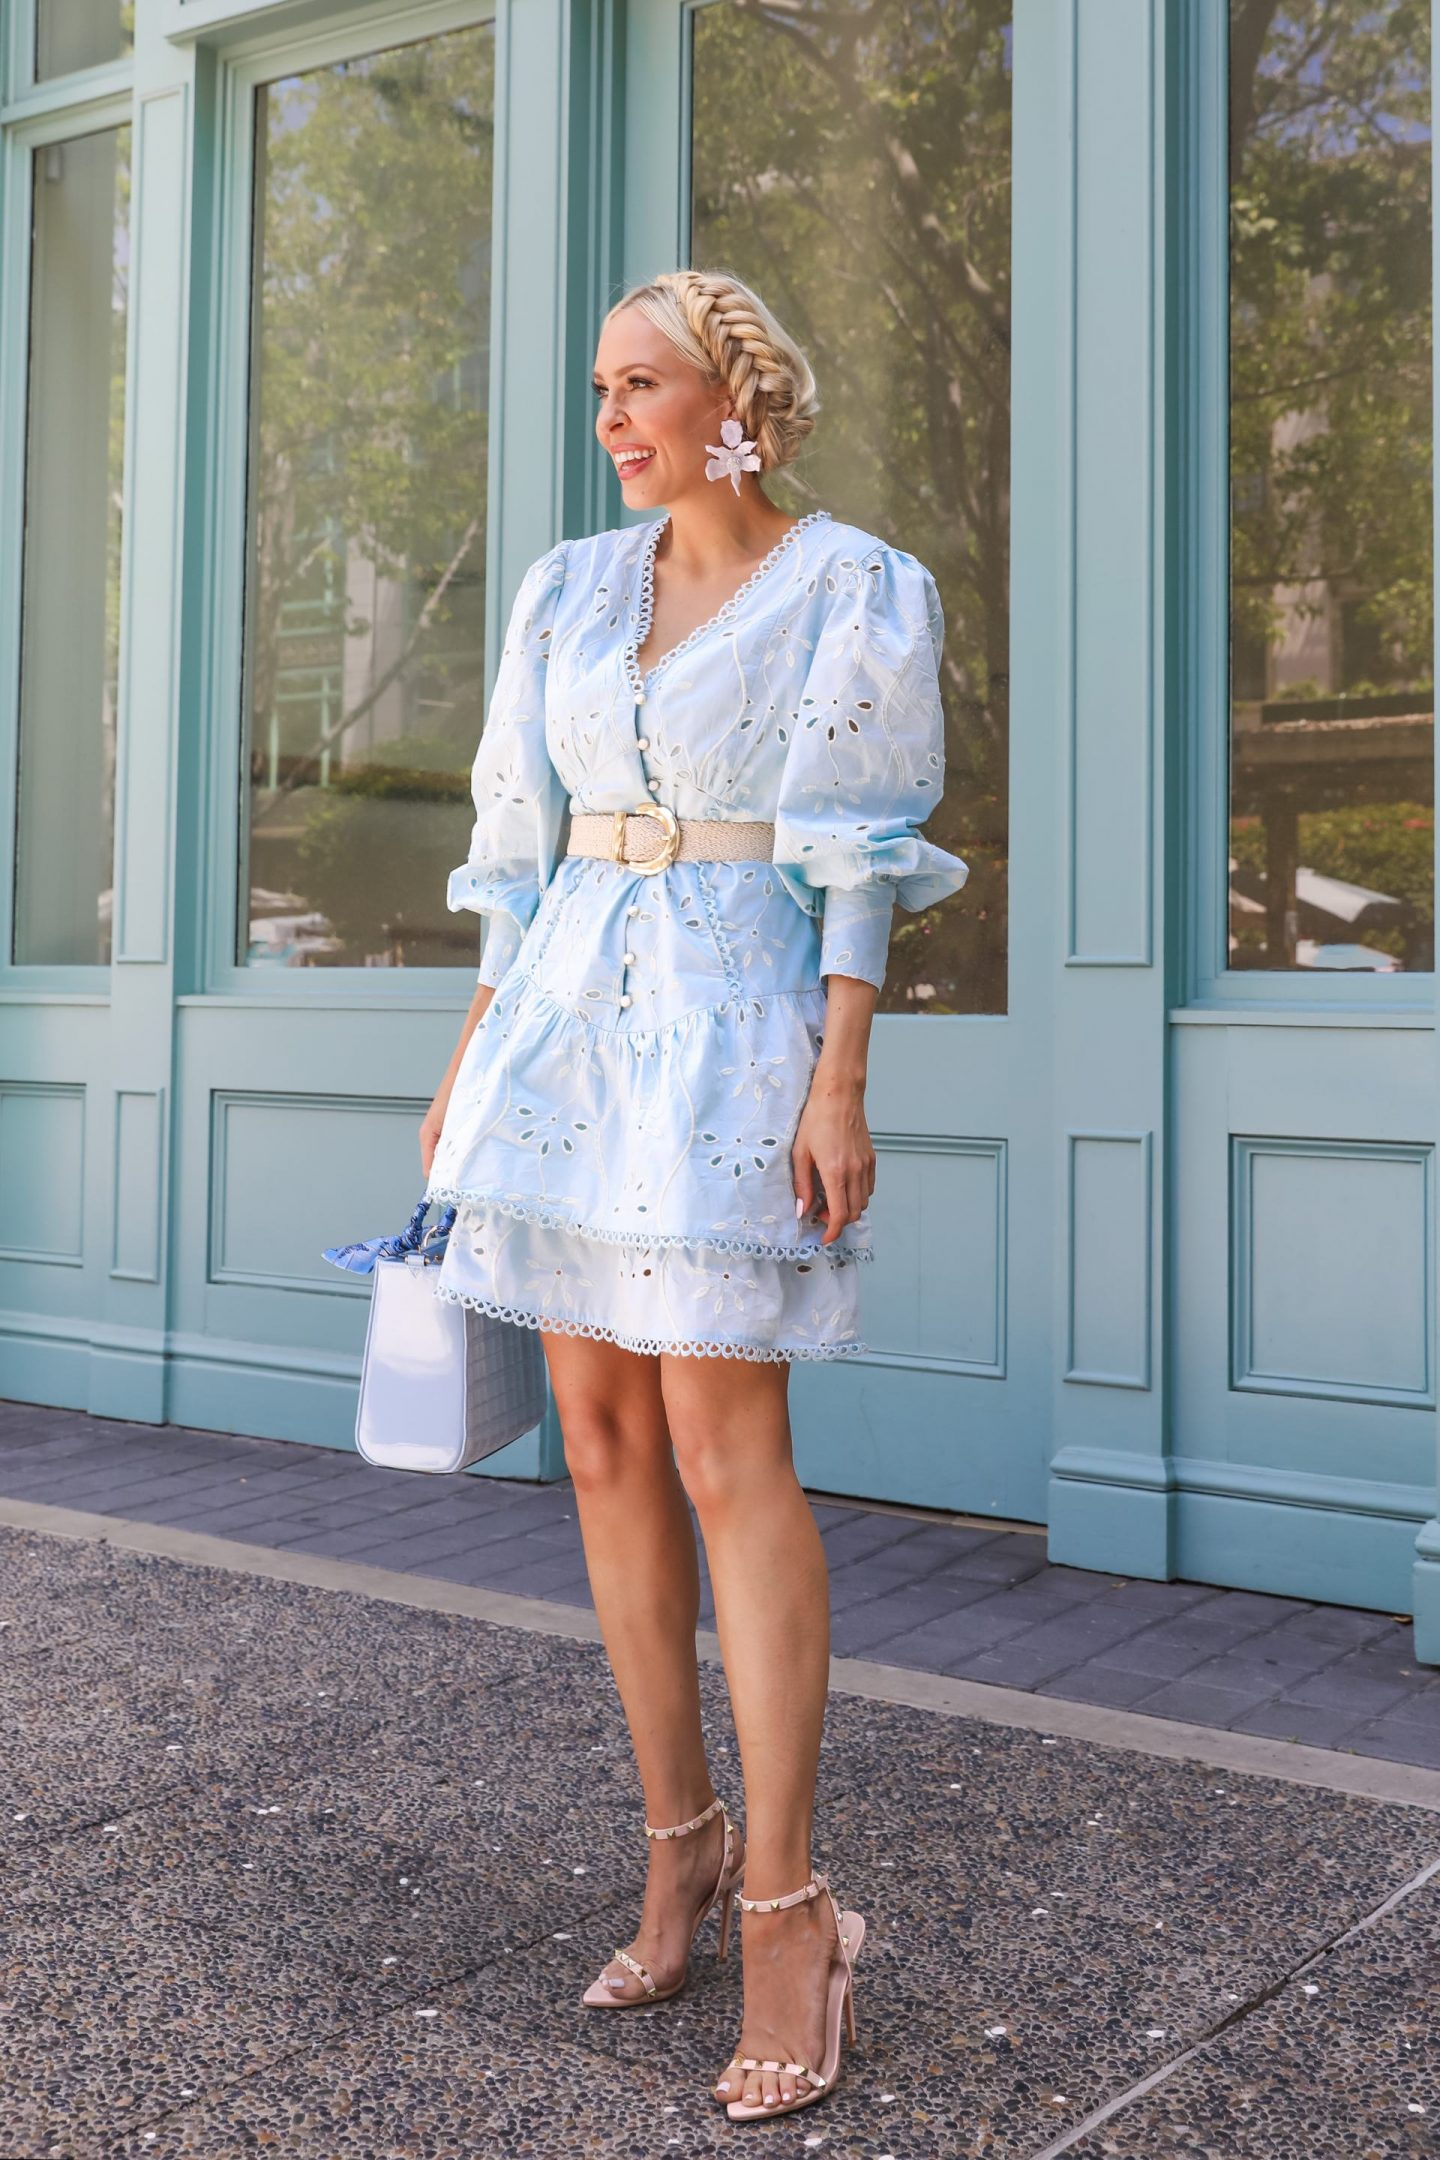 Spring feminine style inspiration from River Island at Nordstrom, by Lombard & Fifth Veronica Levy.